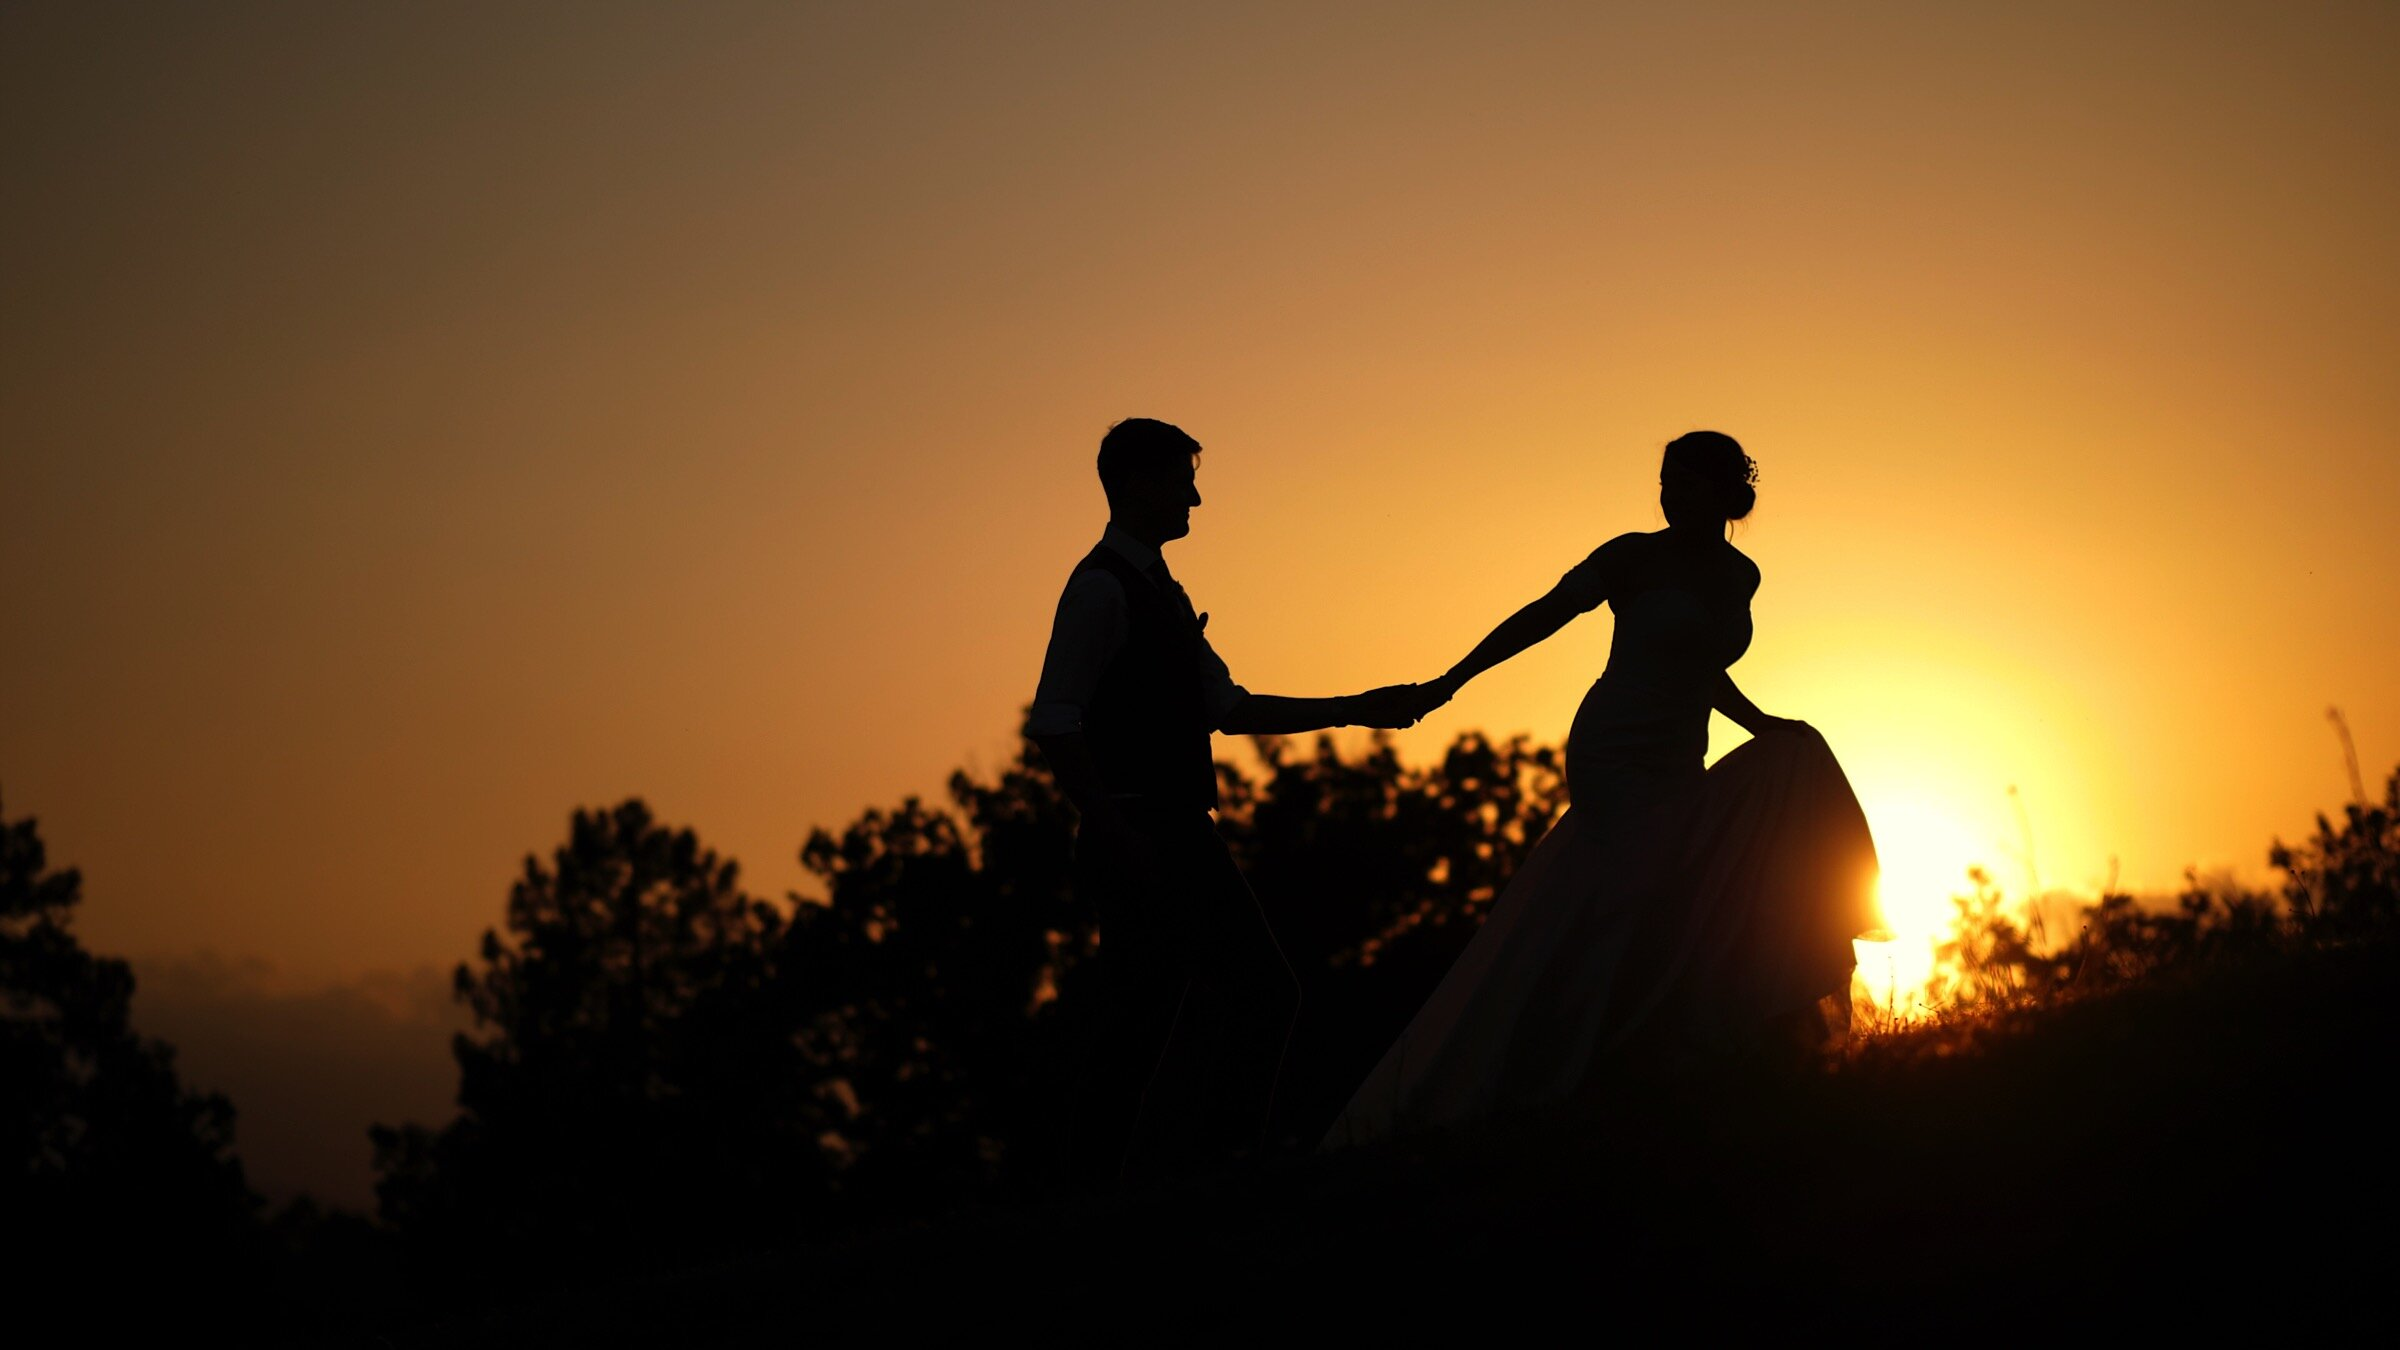 Beth and Steve share a walk, hand-in-hand, up a hill, silhouetted against a stunning Tuscan sunset.